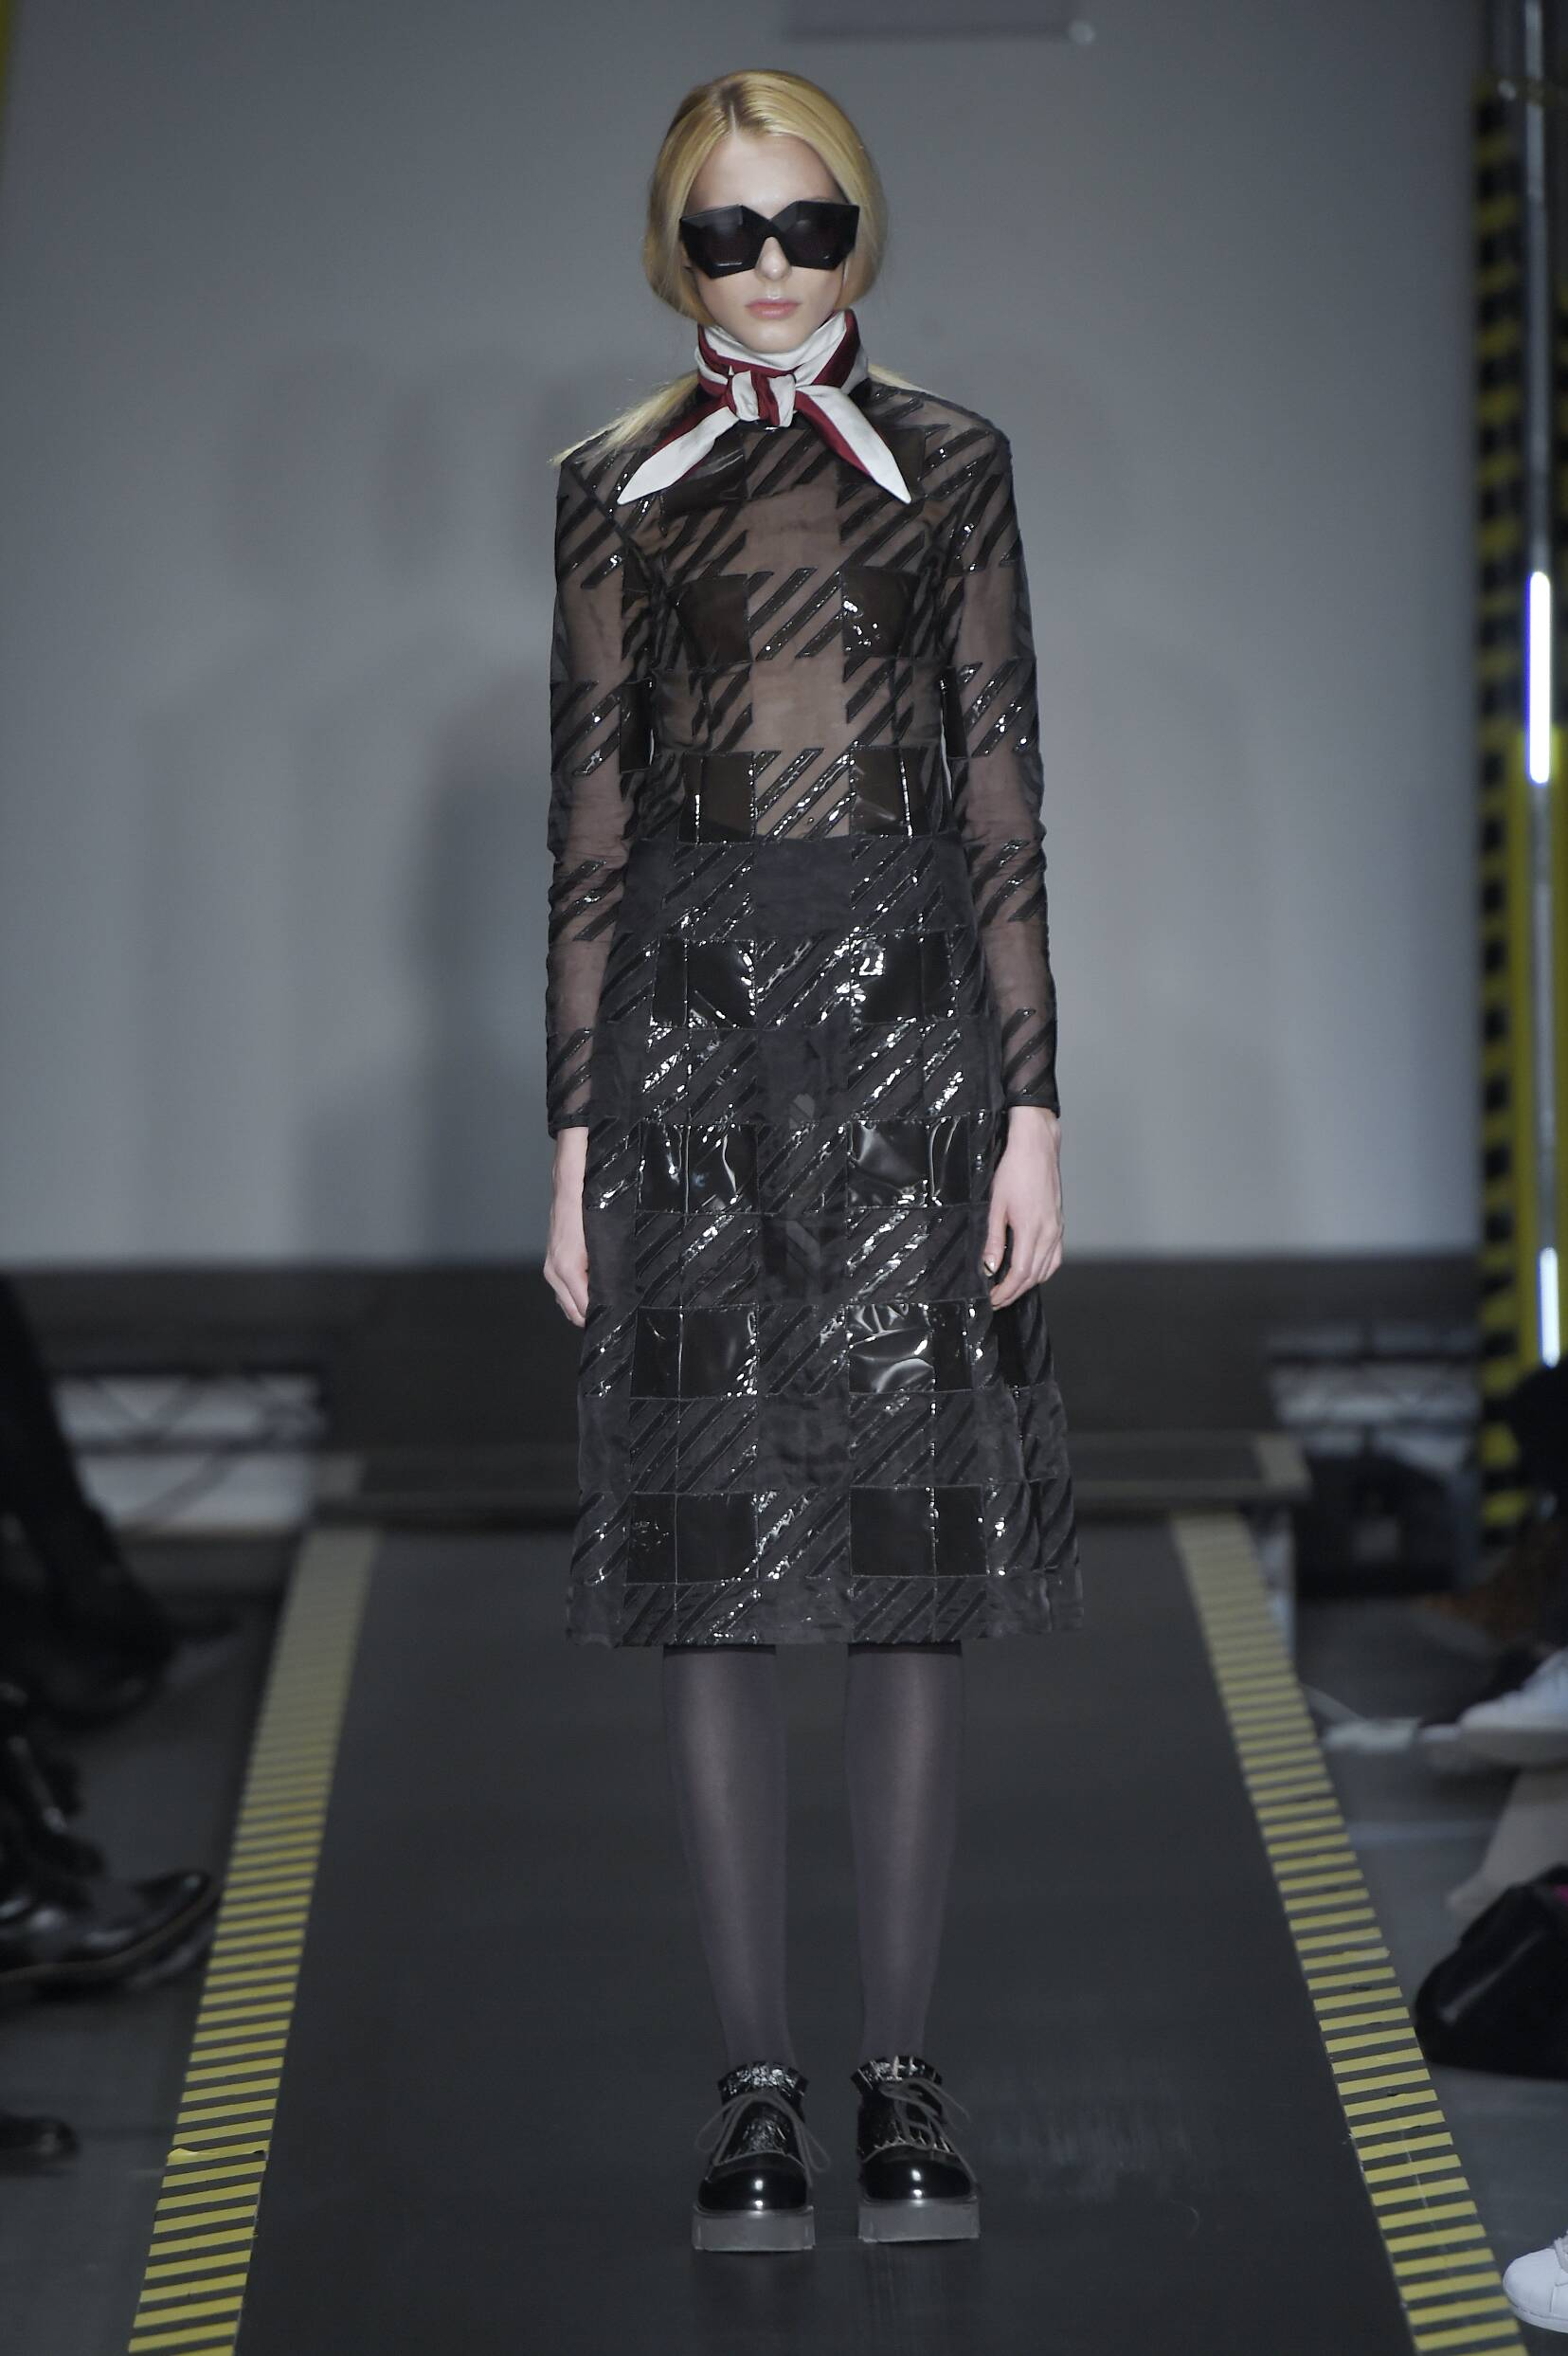 House of Holland Fall Winter 2015 16 Women's Collection London Fashion Week Fashion Show